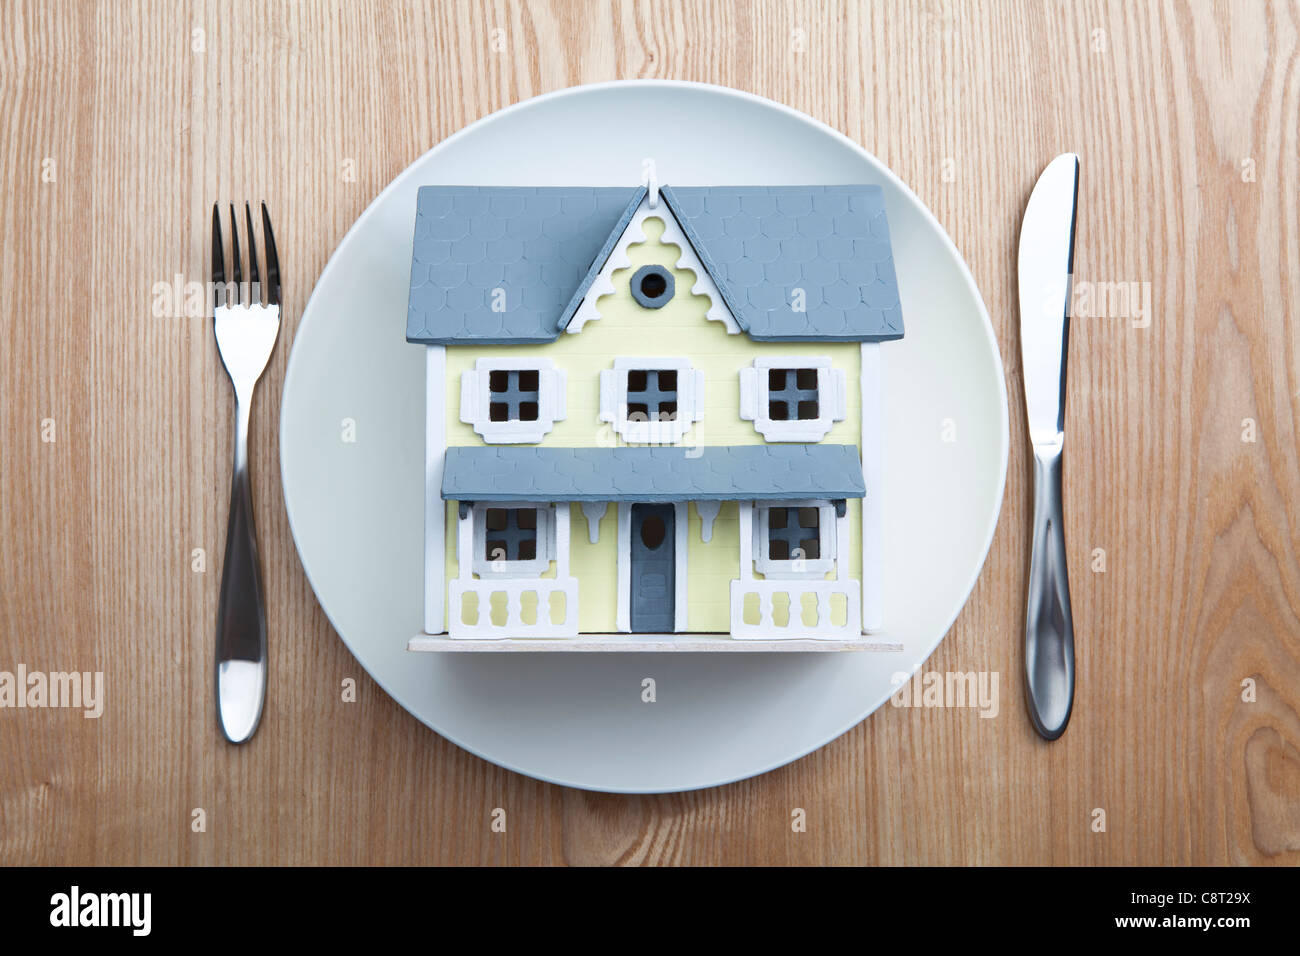 Top view of architectural model placed in plate with fork and knife on table Stock Photo